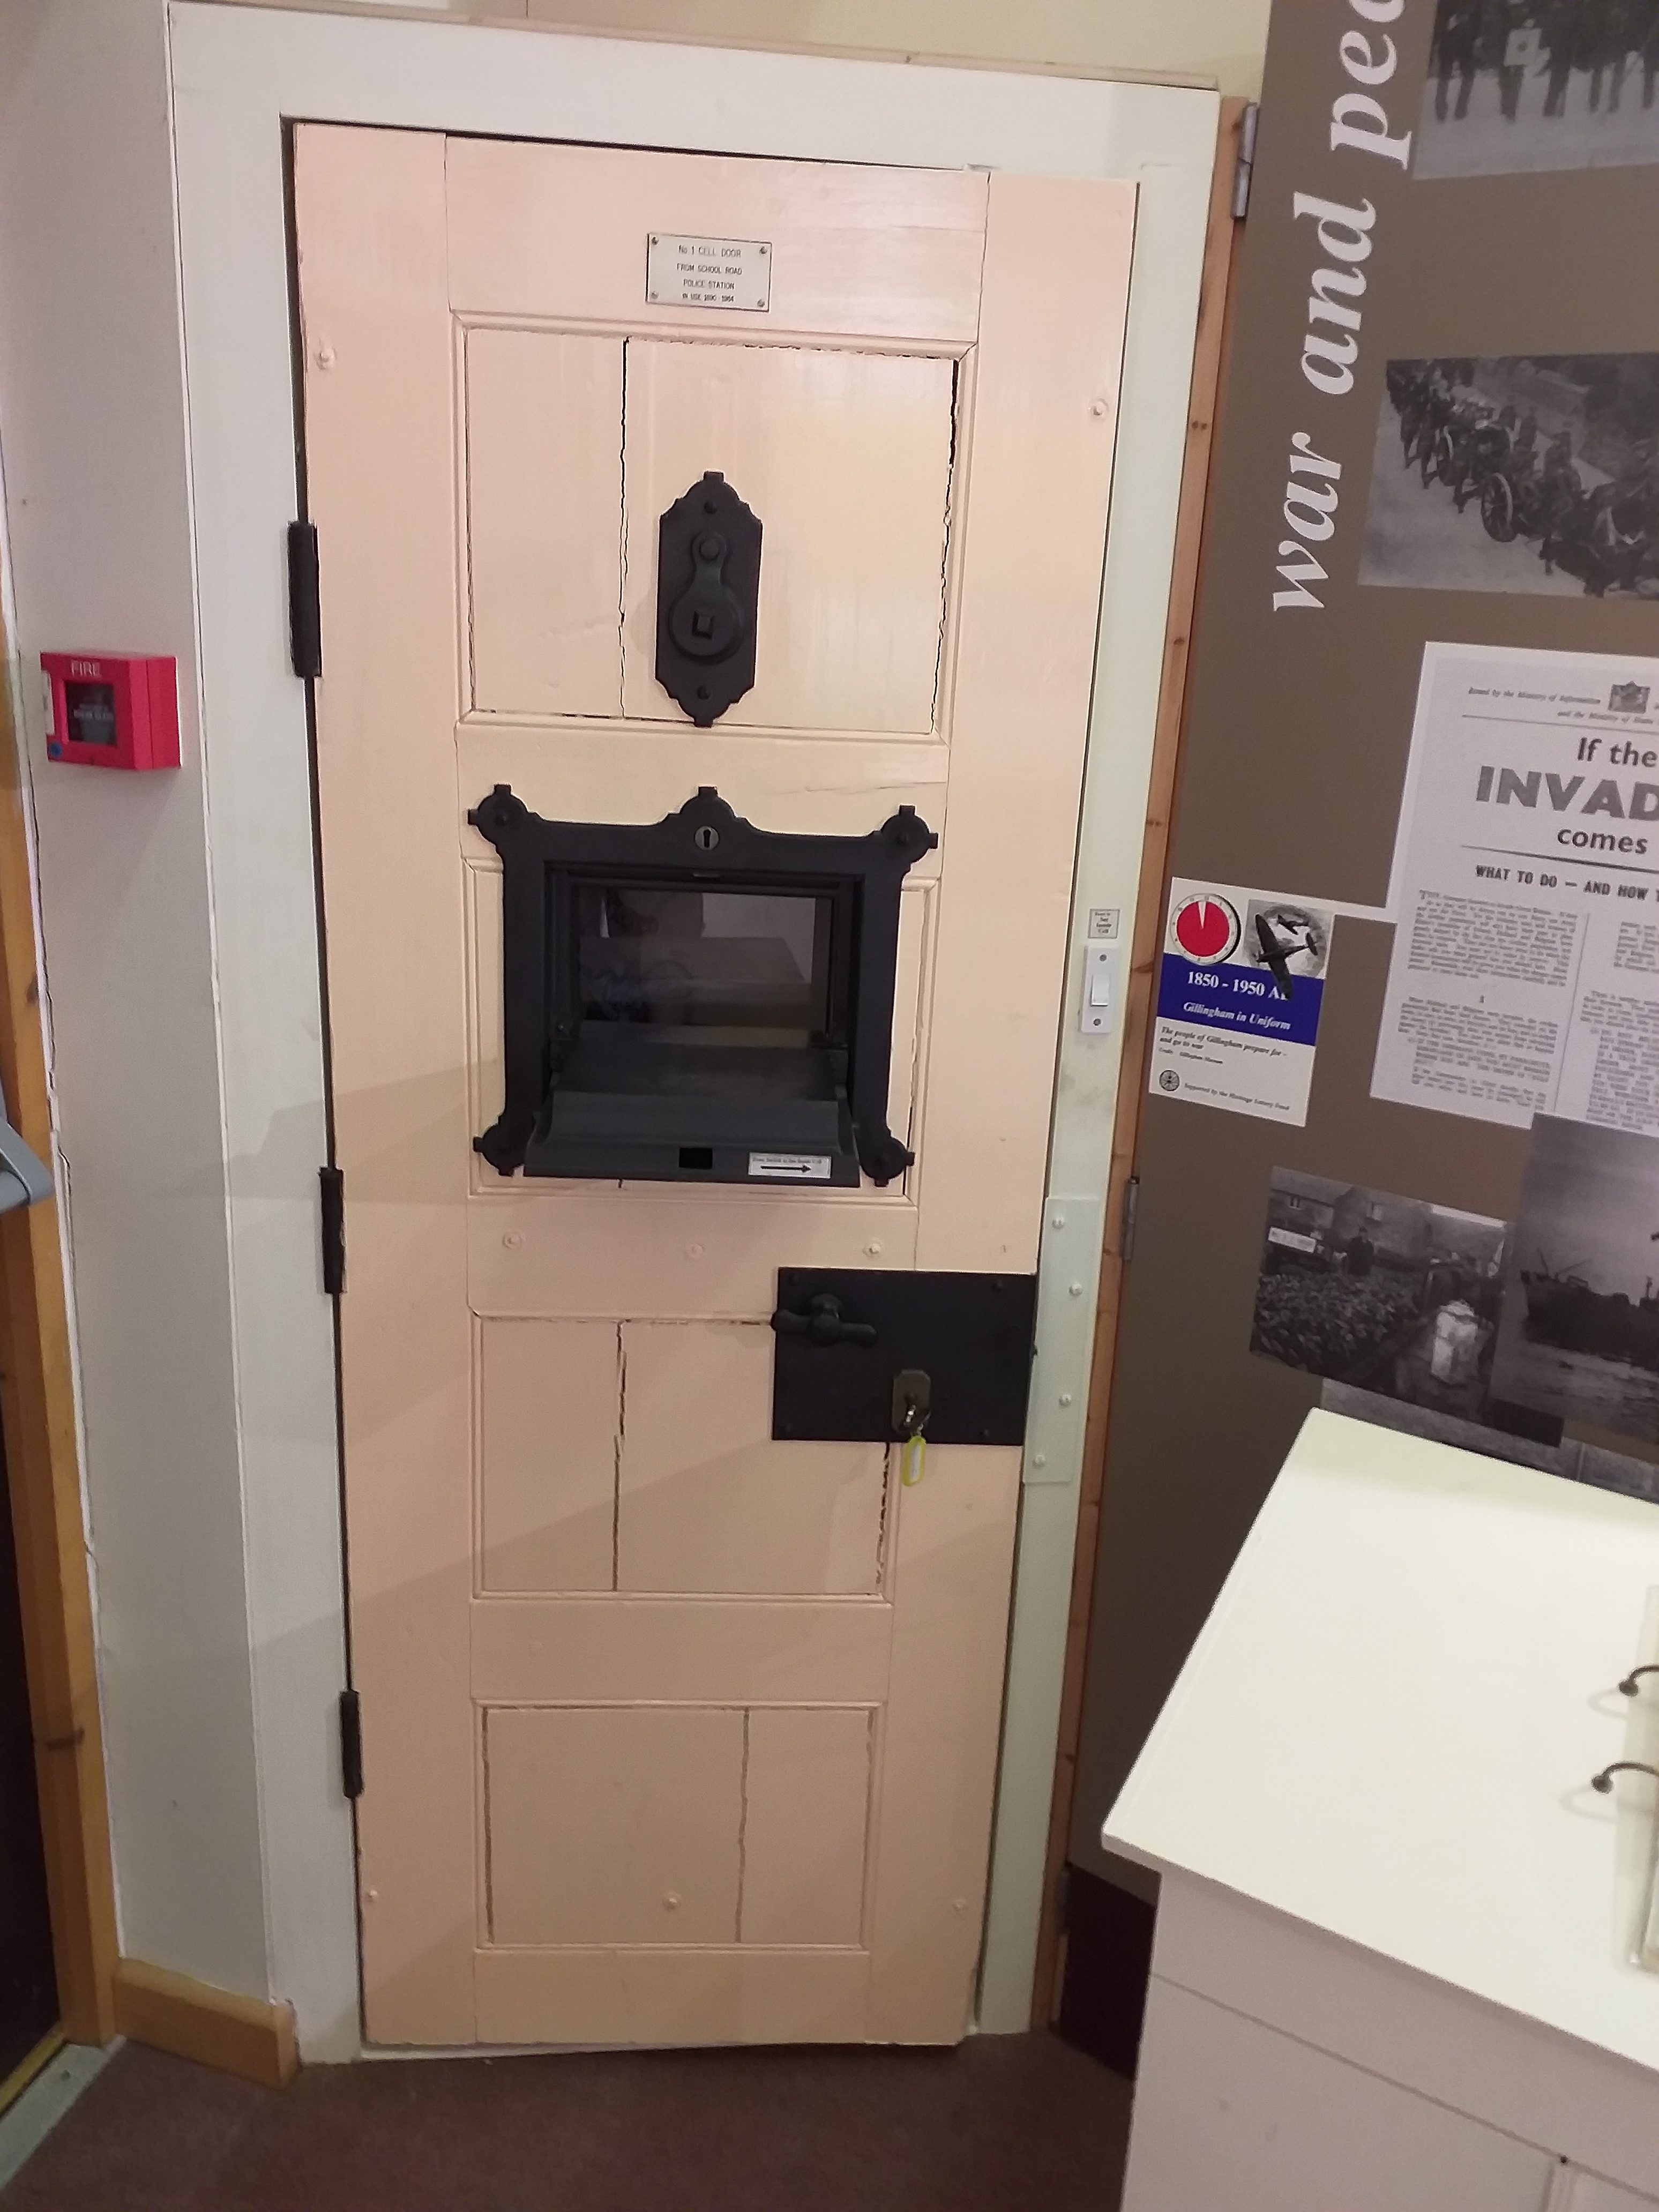 One of the original cell doors, now on display in Gillingham Town Museum. The door was in use until 1984 when the interior of the station was modernised.